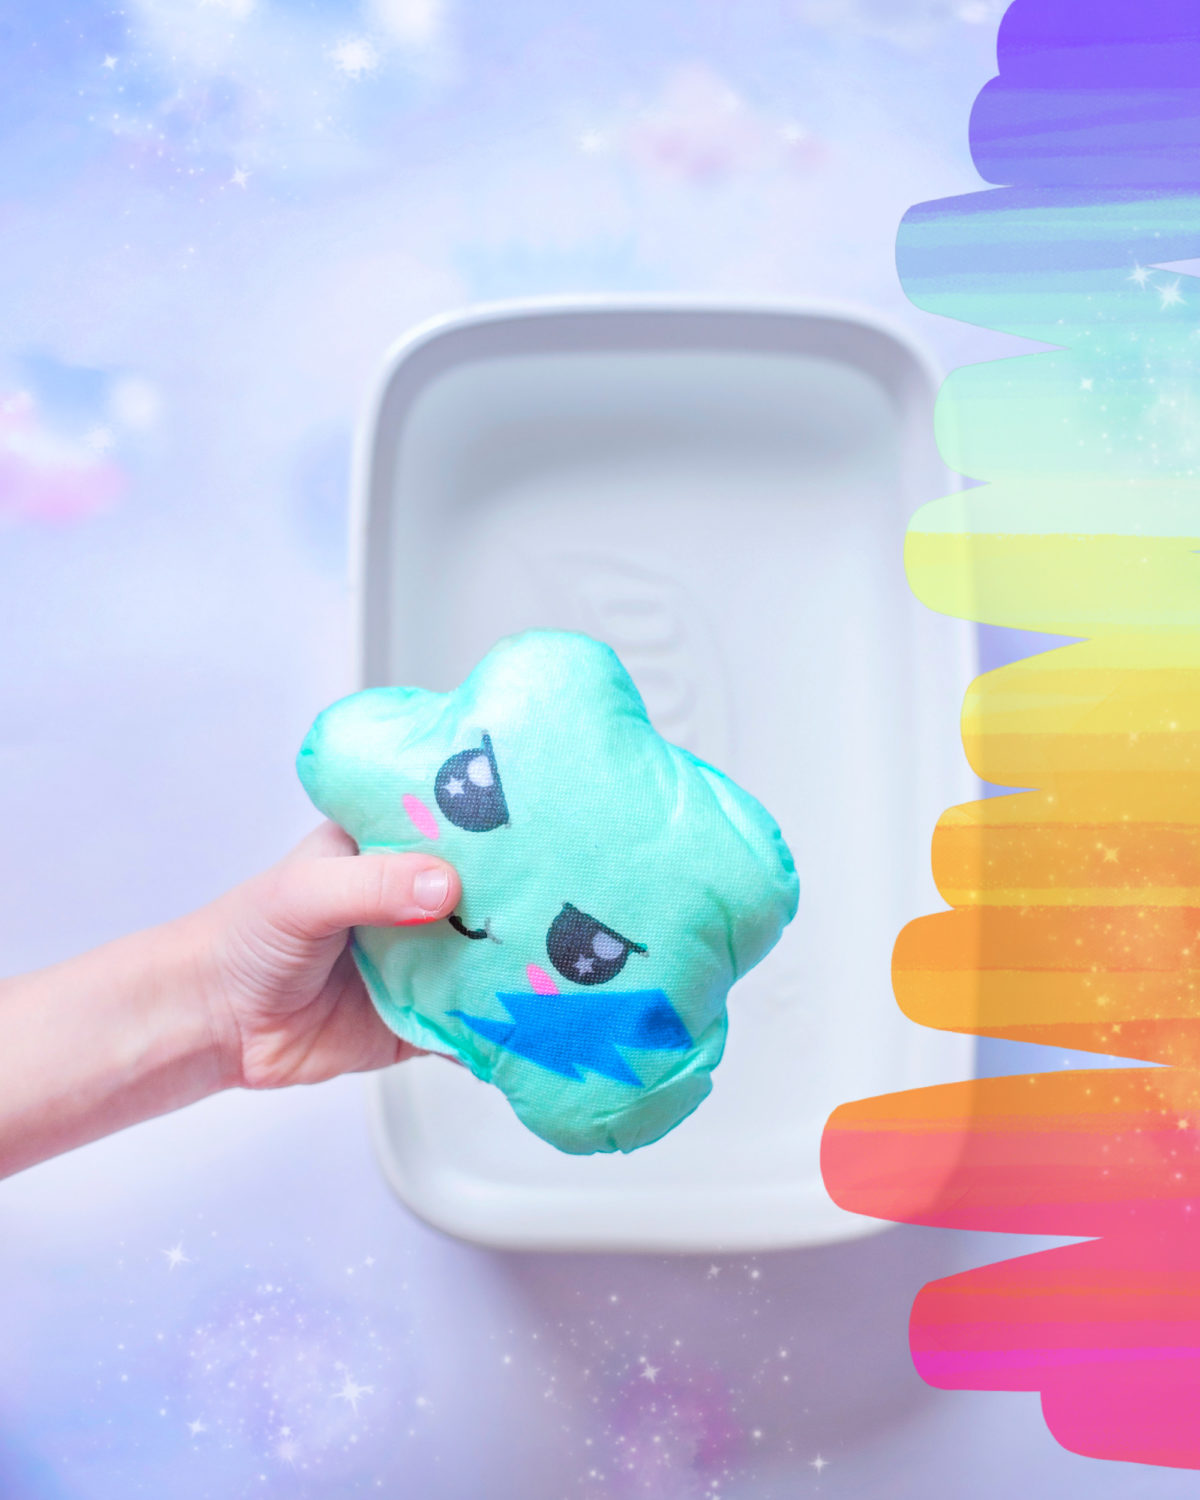 Uni-Verse Surprise Clouds ready to be dissolved in warm water to reveal unicorn and accessories